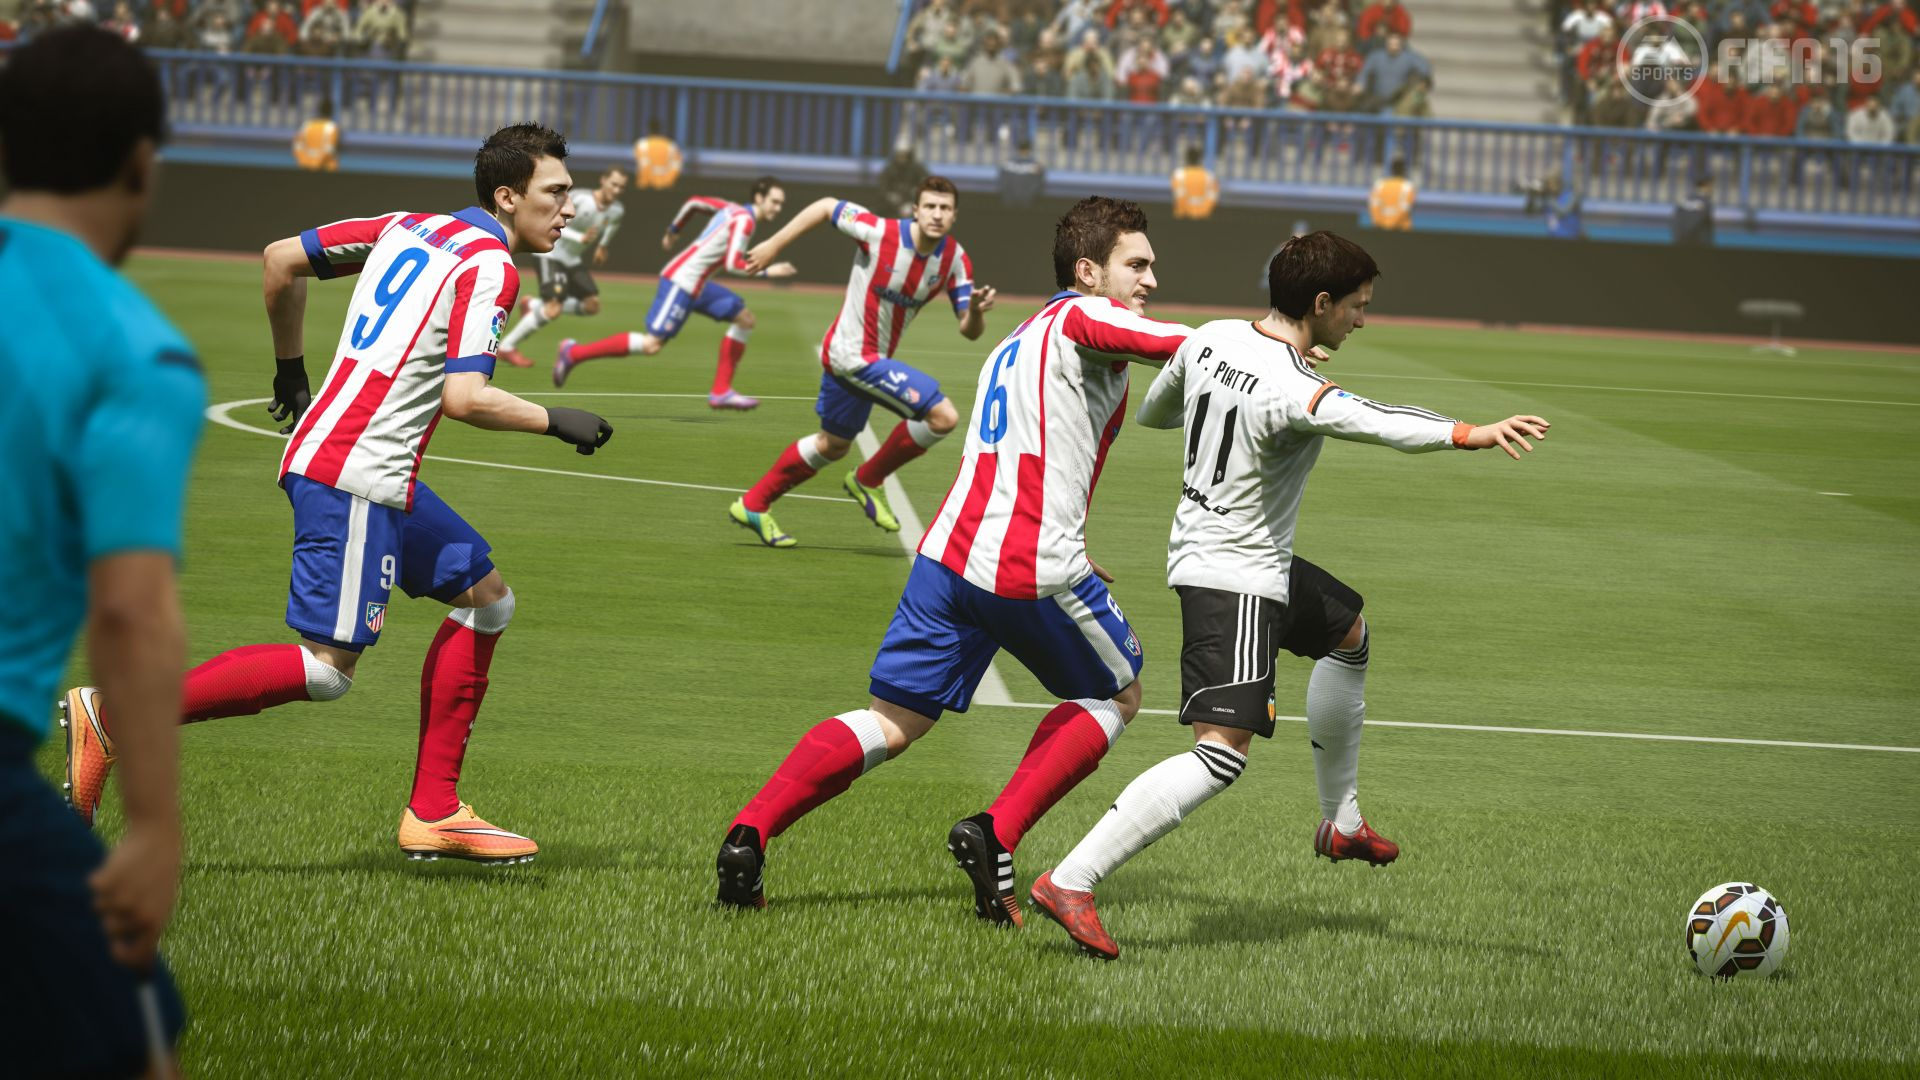 fifa 16 activation key for pc